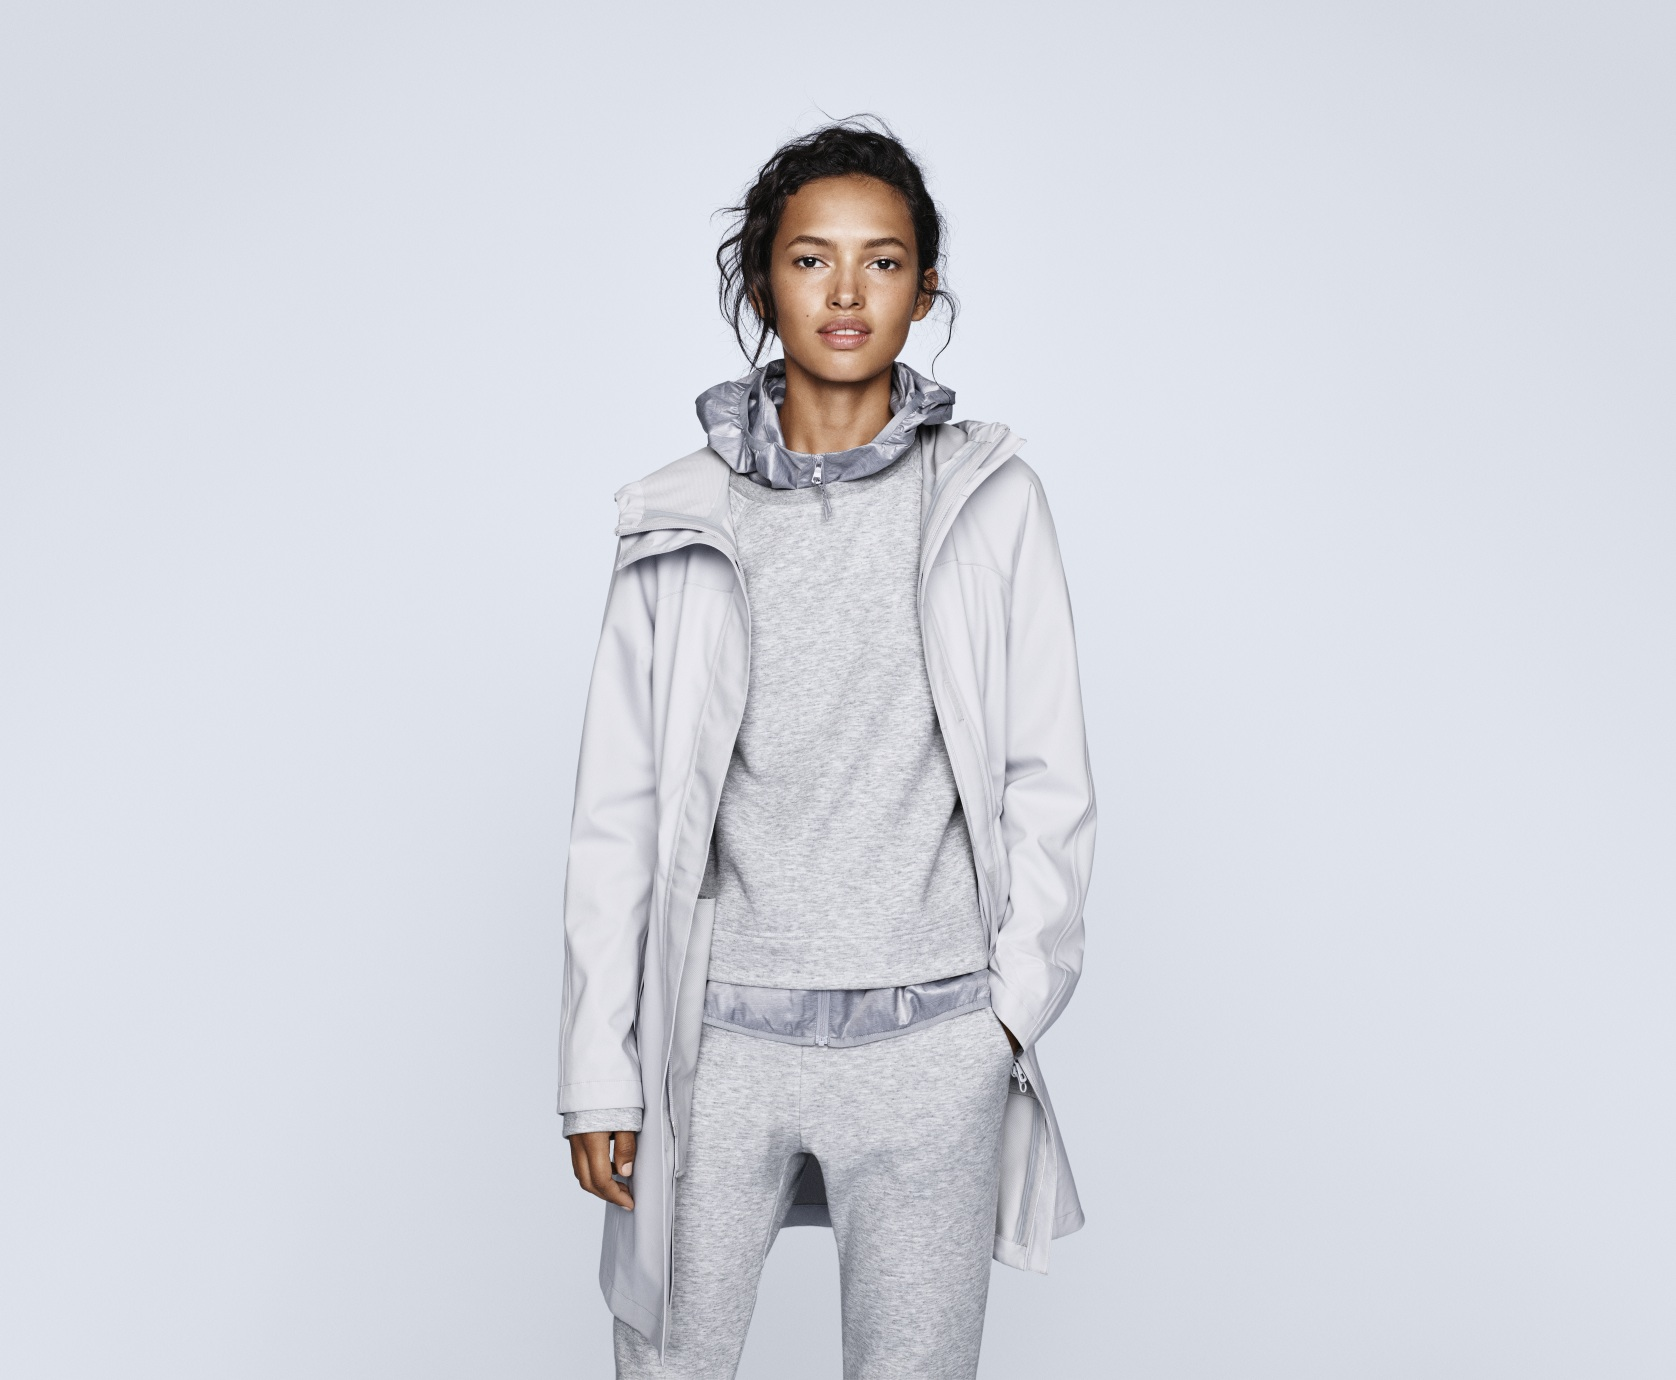 UNIQLO has released a very flash raincoat with a built-in headphone cord